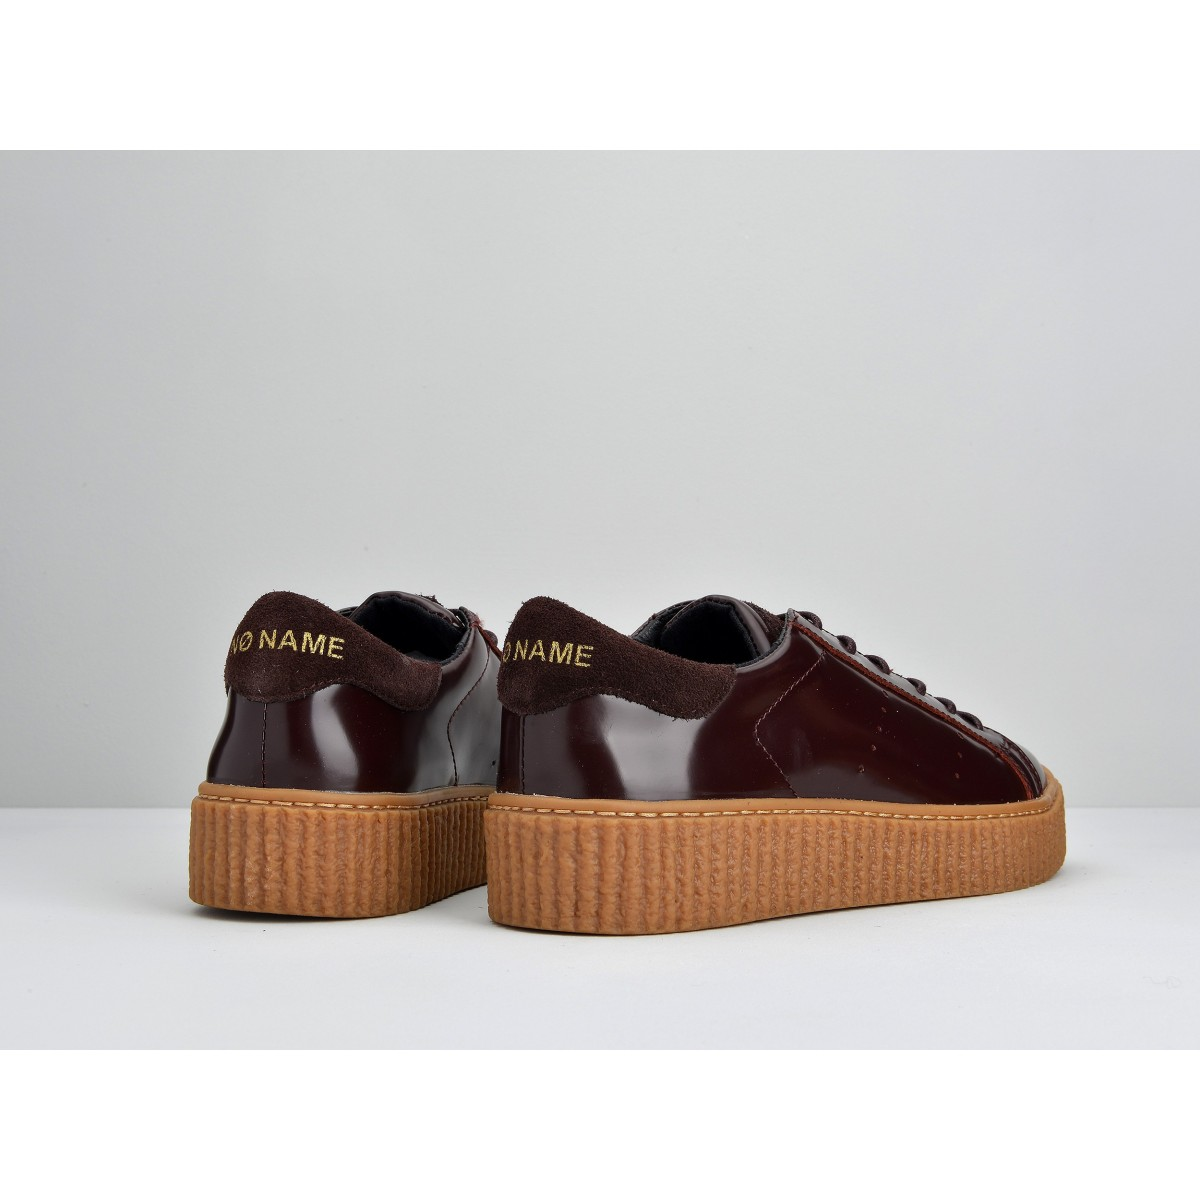 No Name PICADILLY SNEAKER - BOX - BURGUNDY SOLE MASTIC